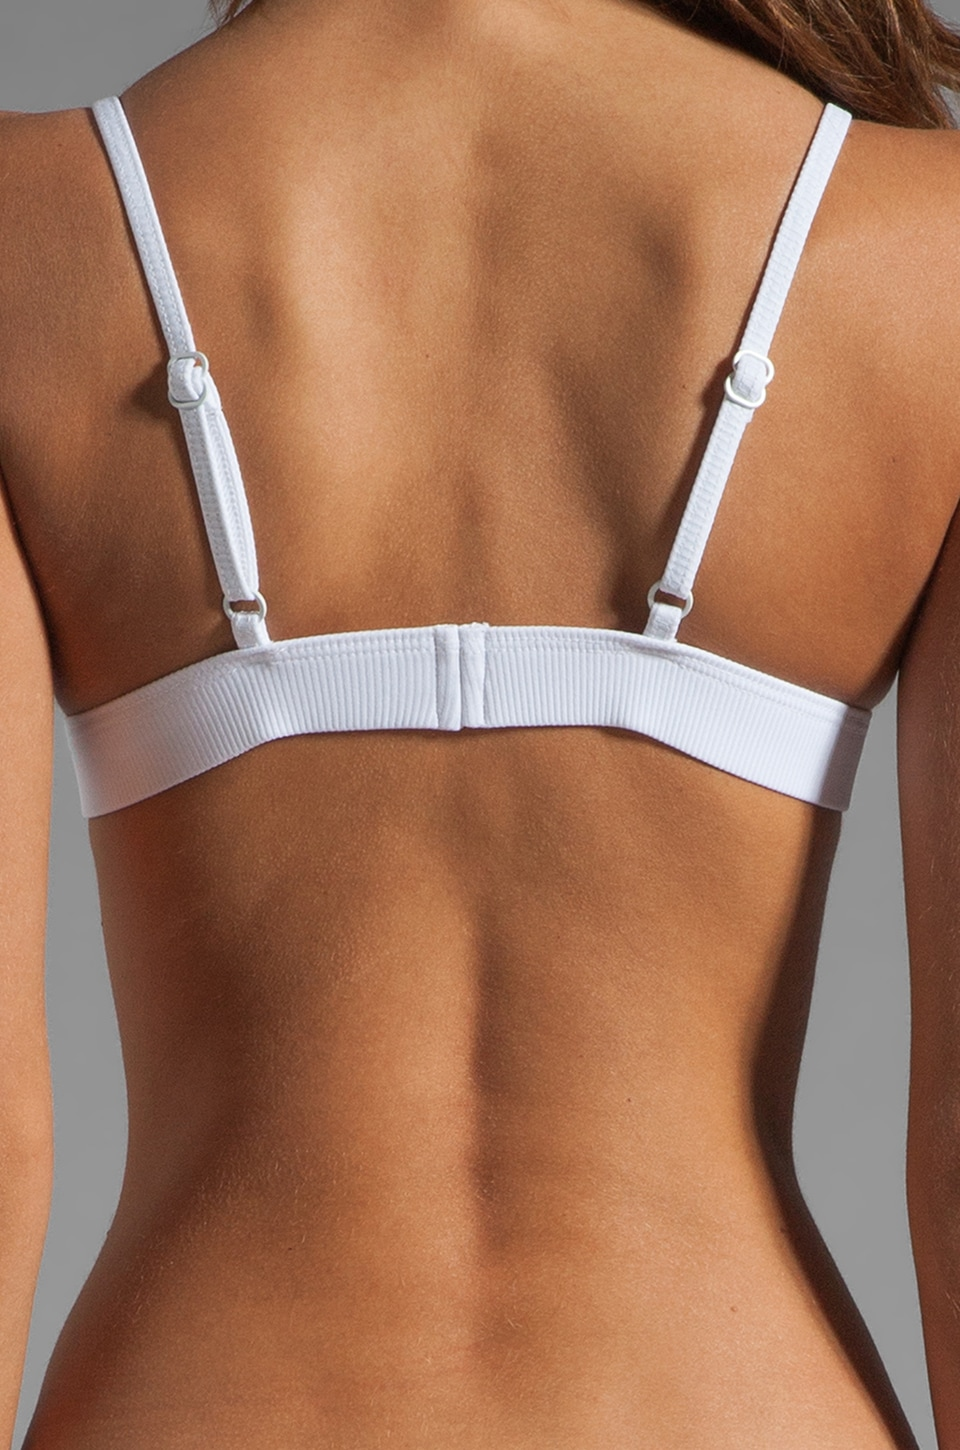 MINIMALE ANIMALE Pay Back Bikini in Blanco with Print with Blanco Mesh Overlay